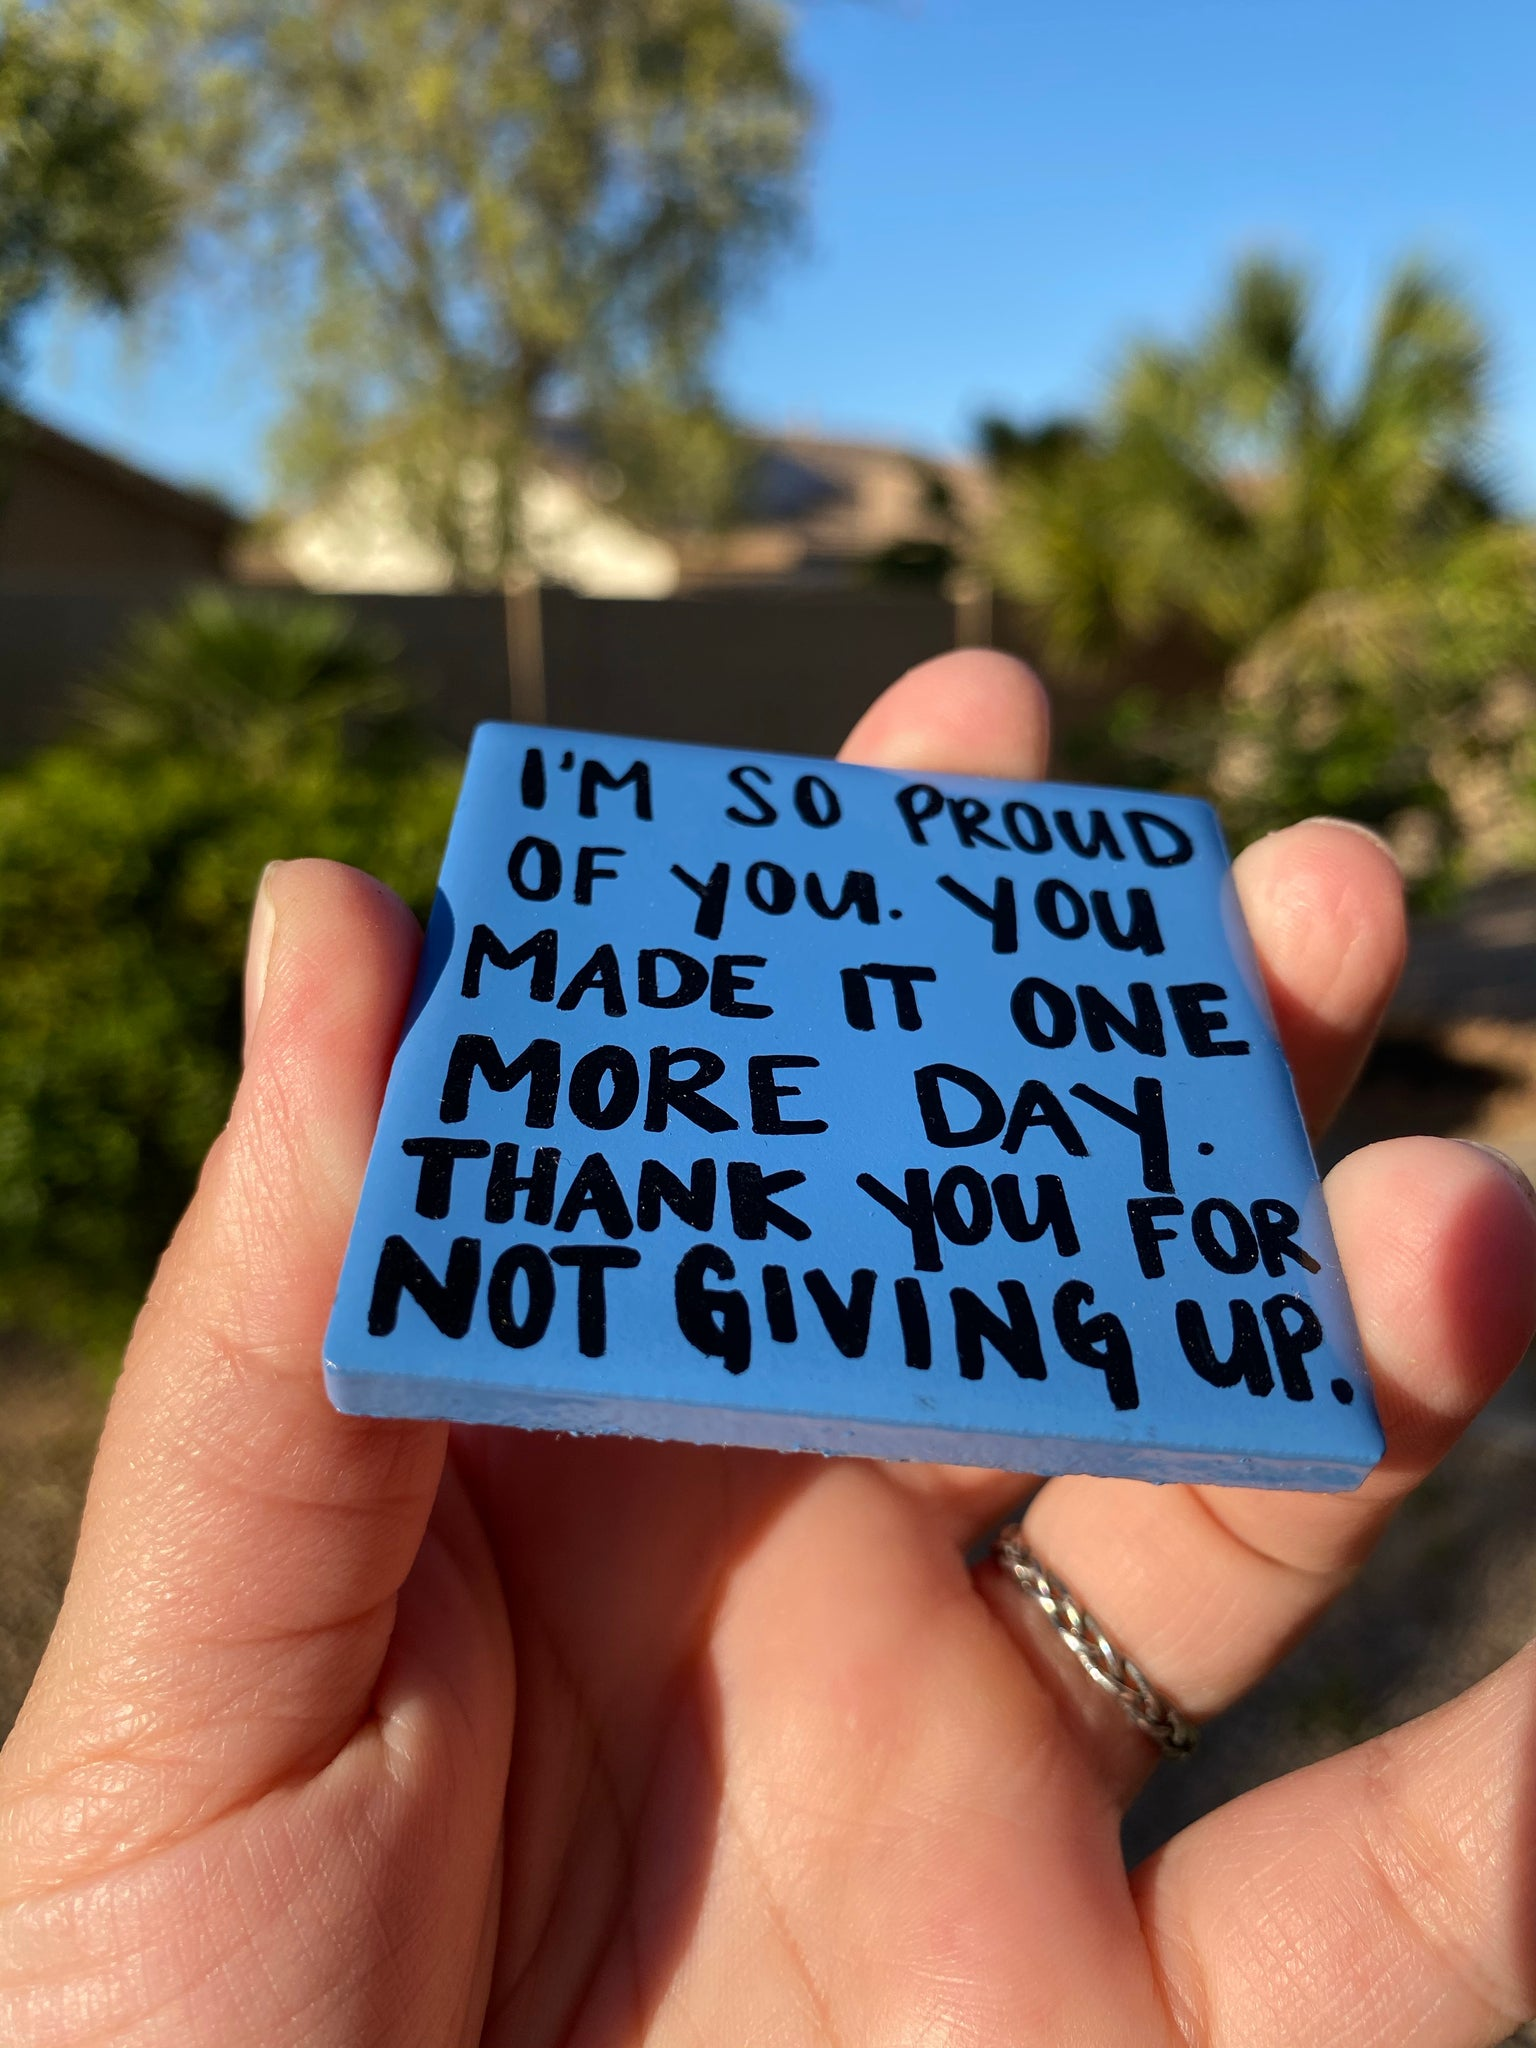 I'm So Proud Of You. You Made It One More Day. Thank You For Not Giving Up. Tile Magnet. Recovery Gift. AA Gift. NA Gift. Encouragement Gift